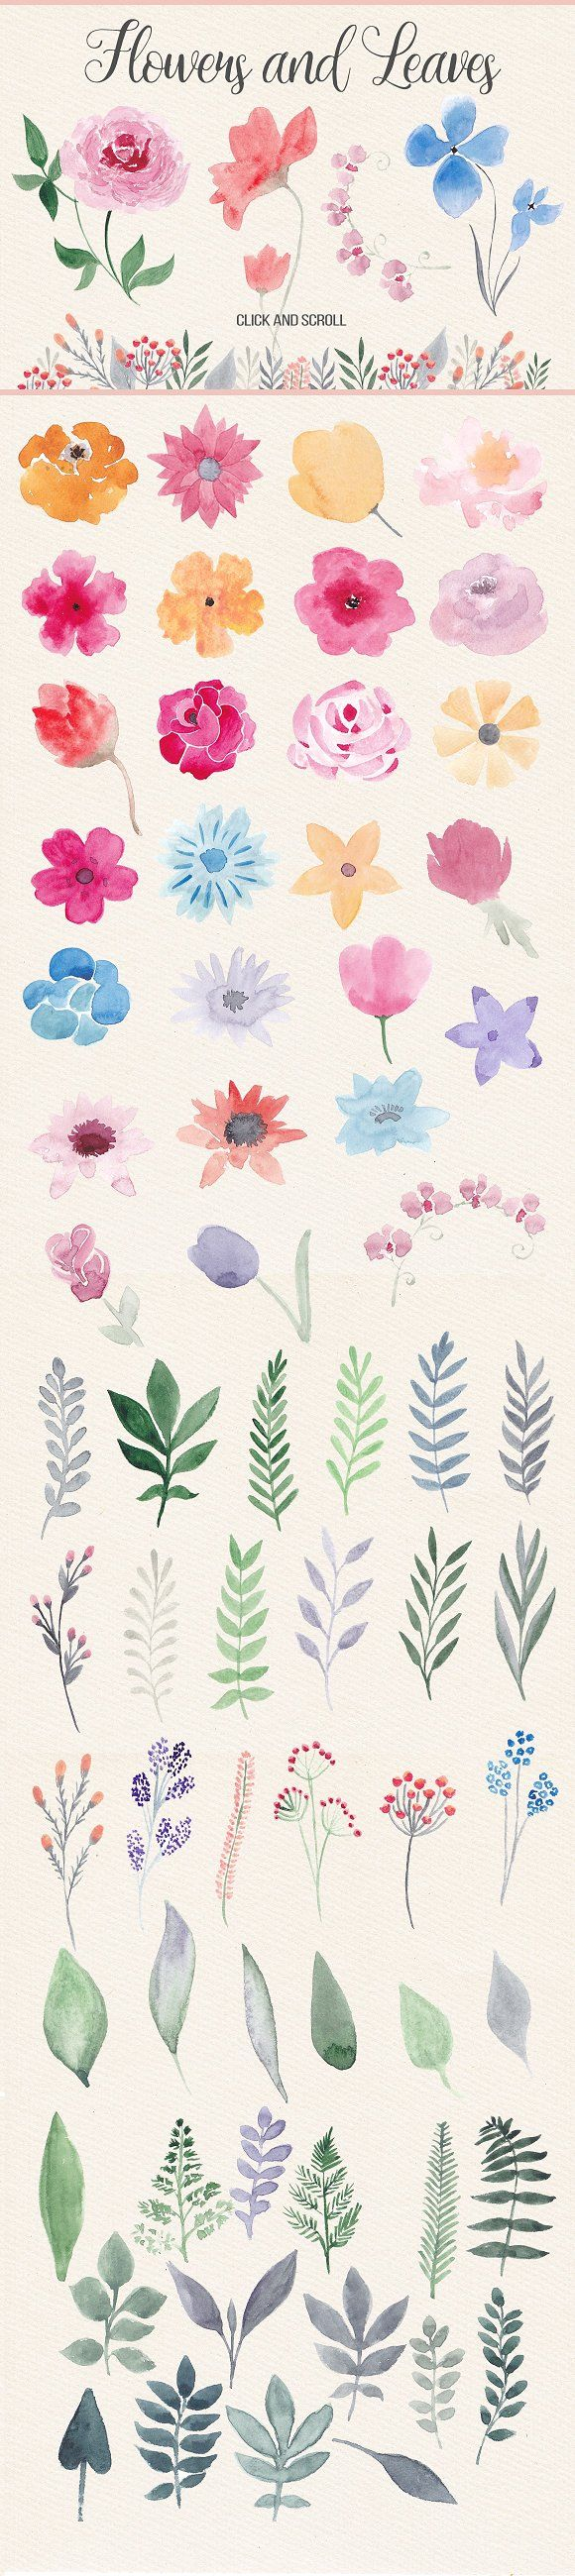 Watercolor book covers - Watercolor Design Kit Objects